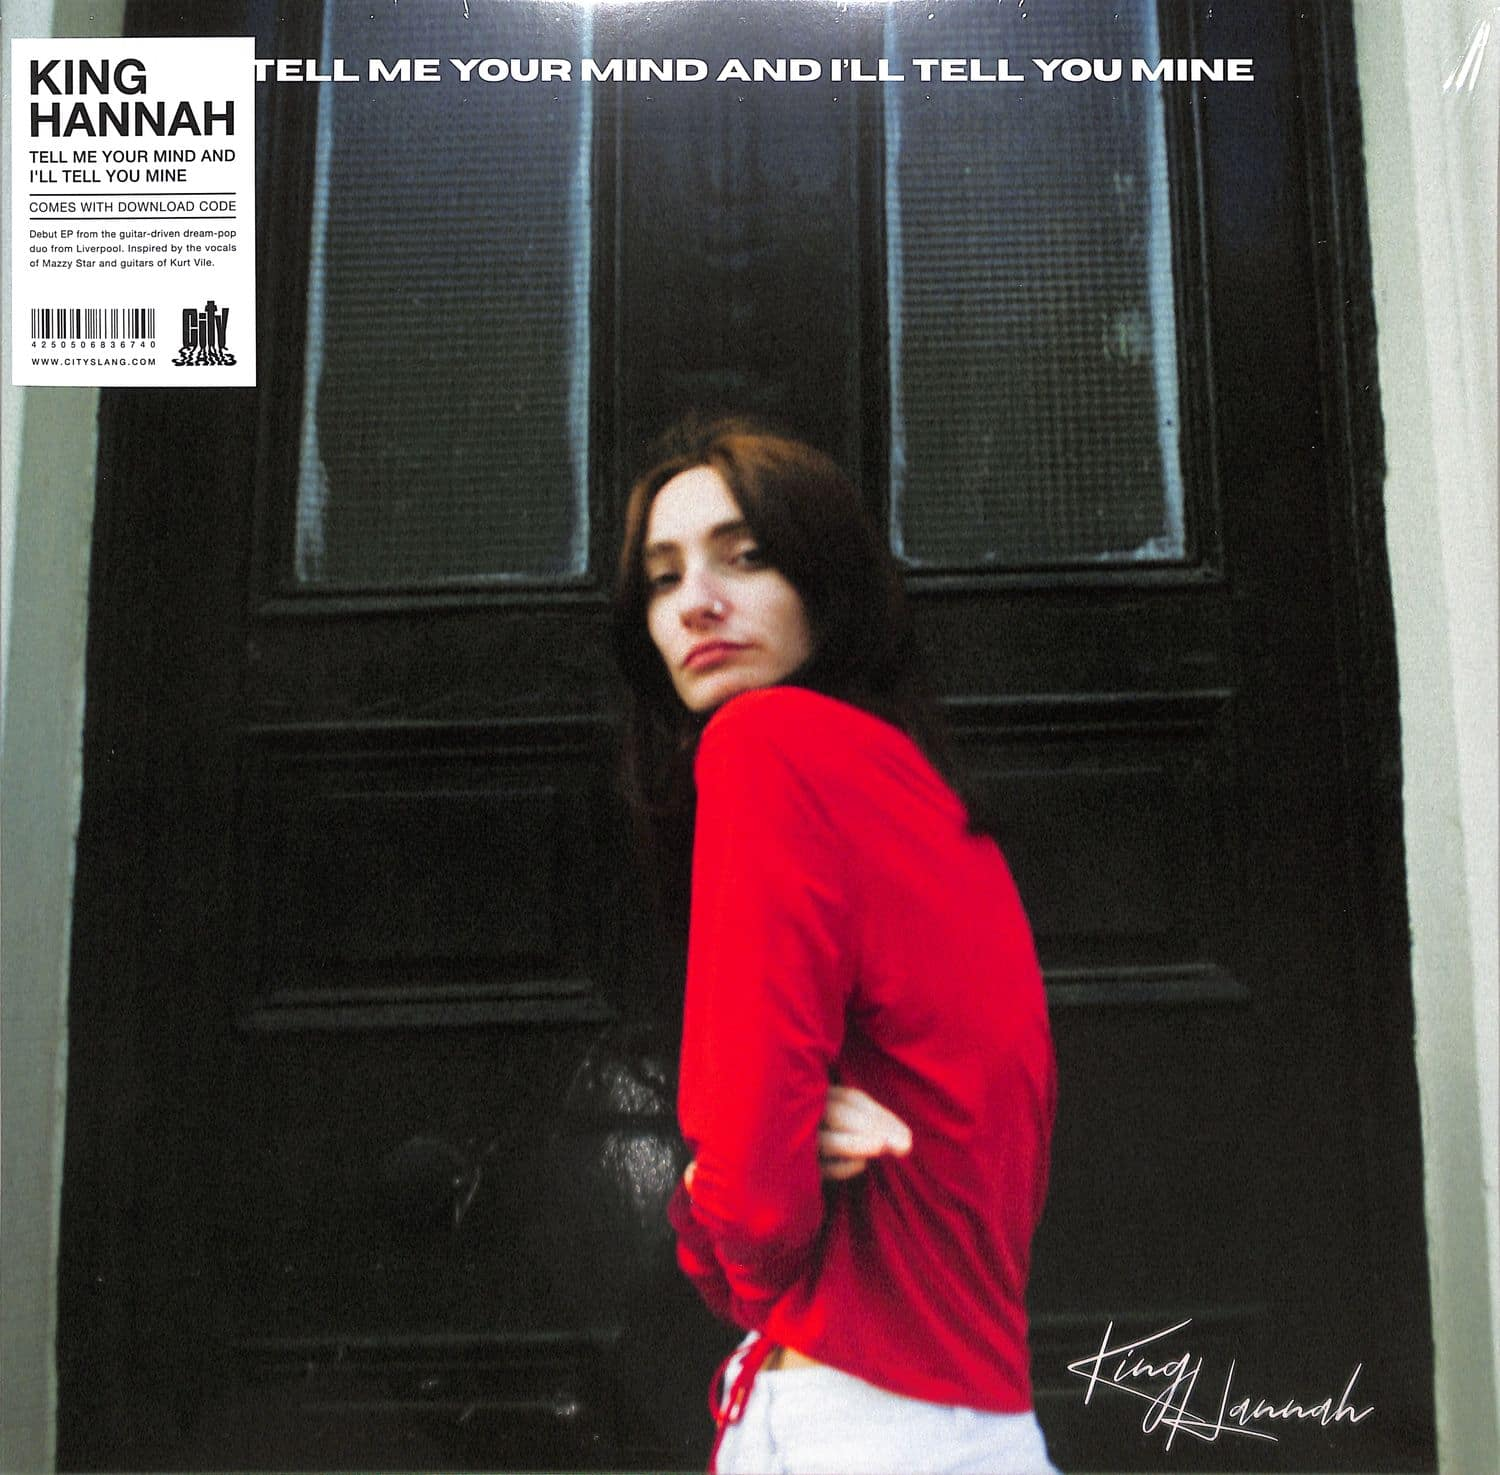 King Hannah - TELL ME YOUR MIND AND ILL TELL YOU MINE